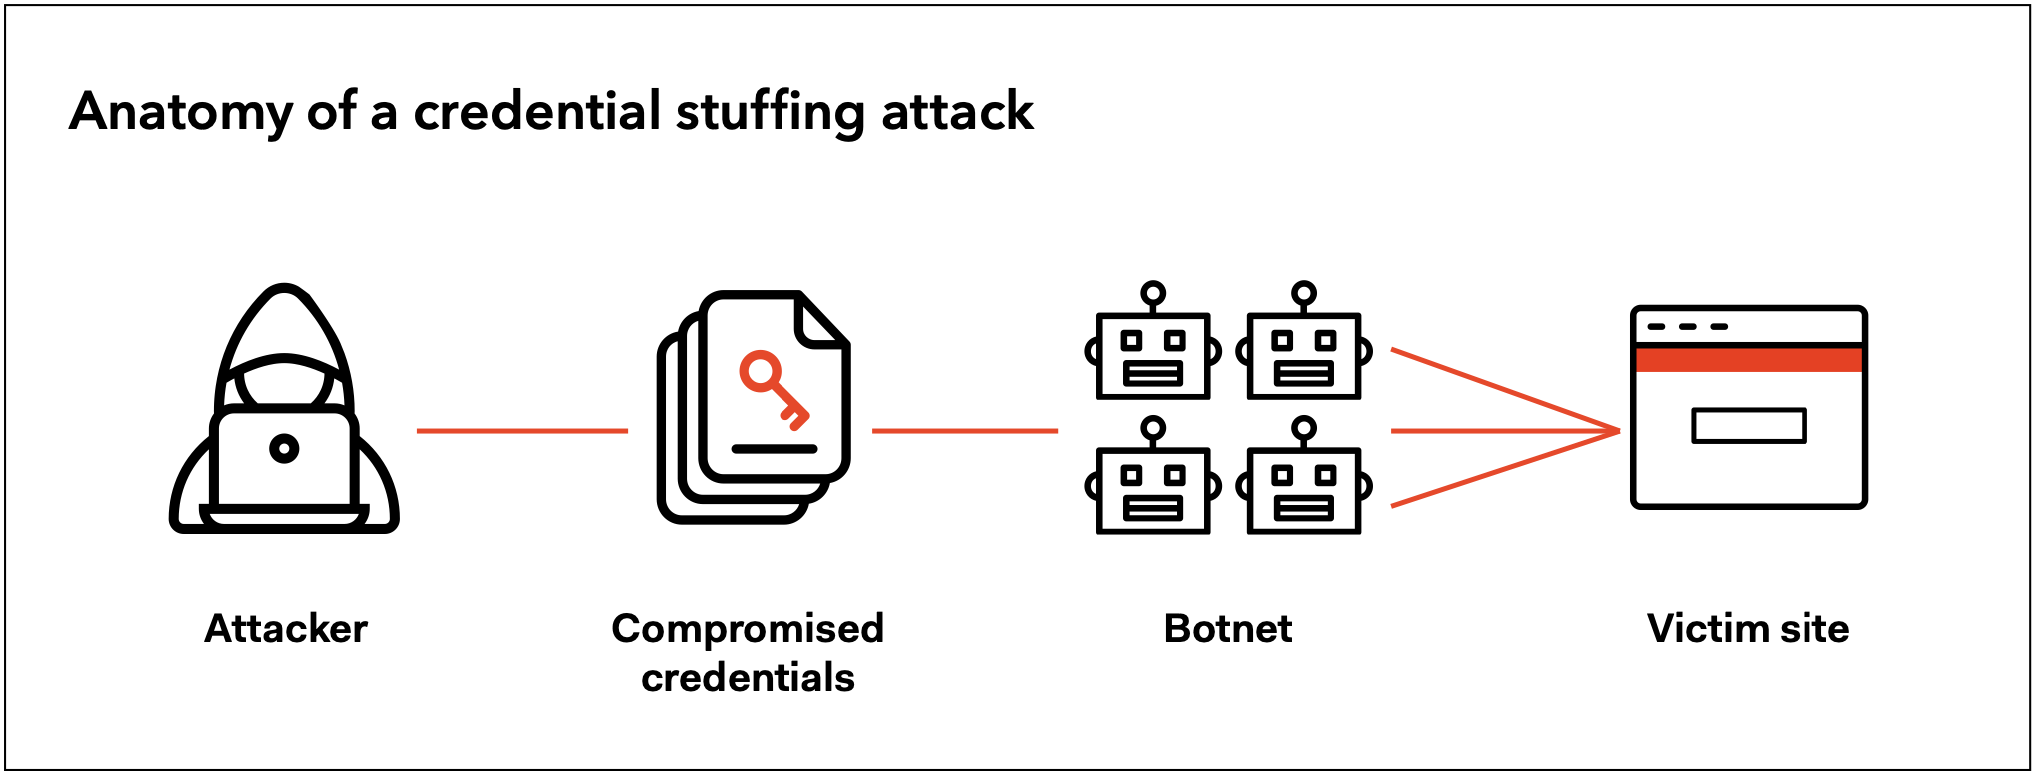 Anatomy of a credential stuffing attack